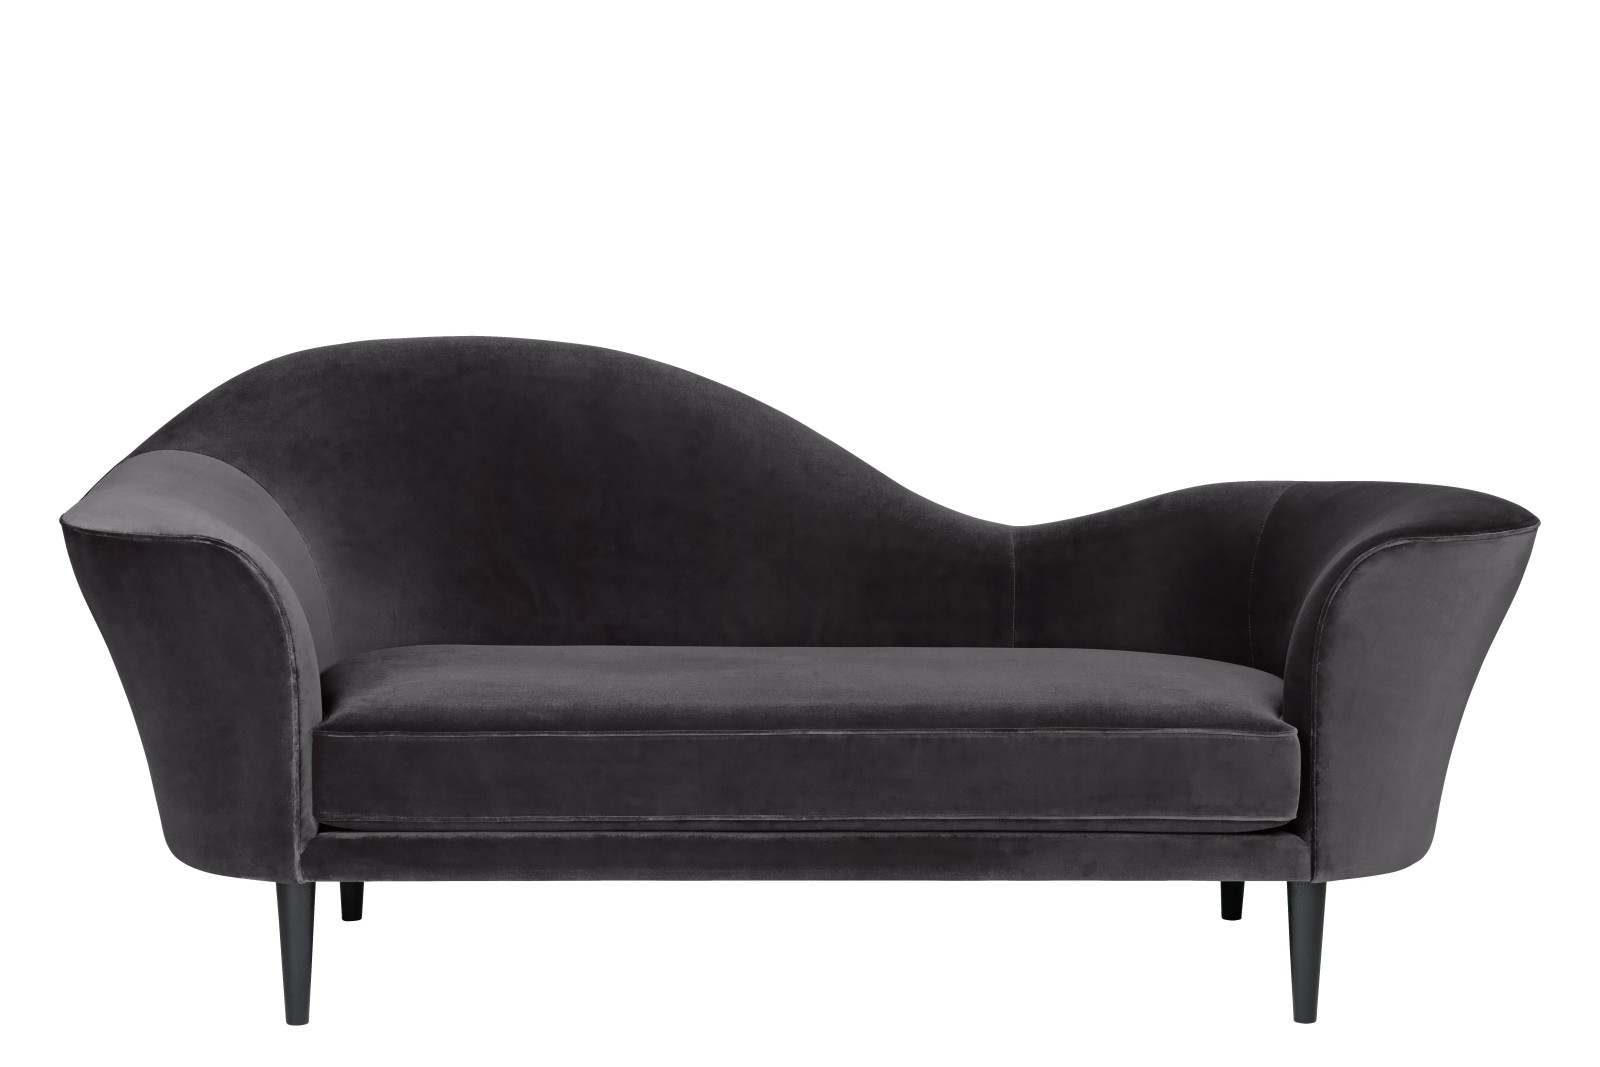 Grand Piano Sofa Price Grp. 03 CM6, Gubi Wood Black Stained Beech, Left